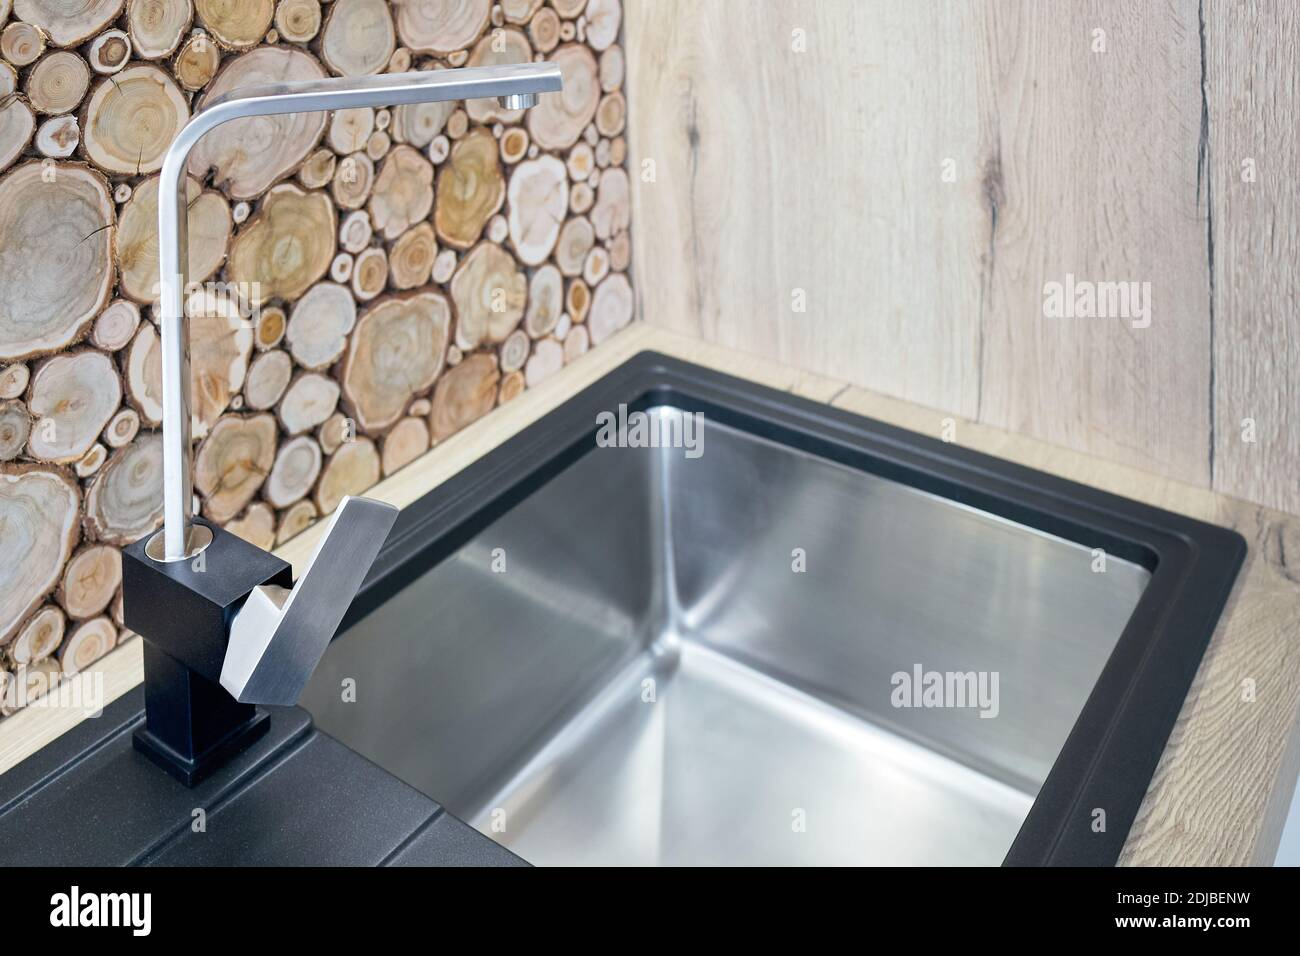 https www alamy com modern design chrome rectangular section water tap closeup over stainless steel sink on table top made of natural wooden kitchen apron decorated with image389944965 html